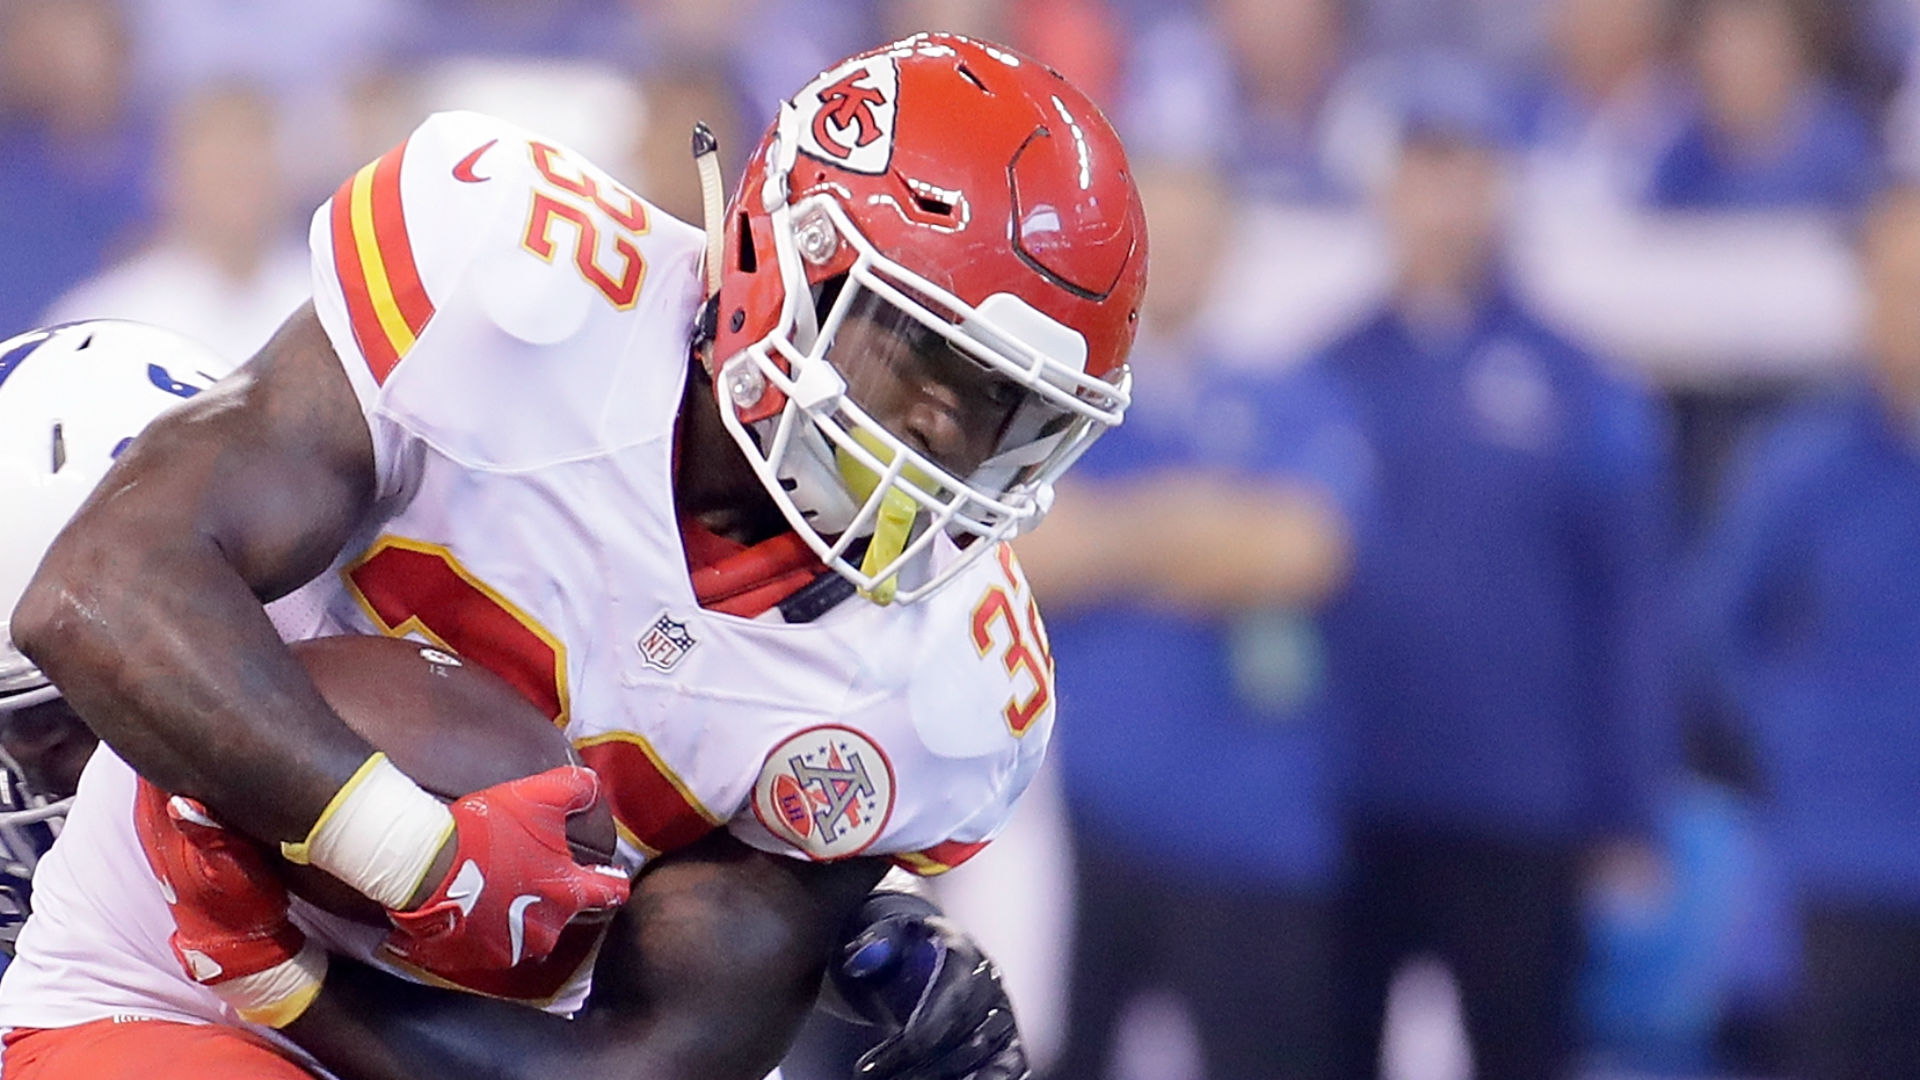 Spencer Ware could be done for the year